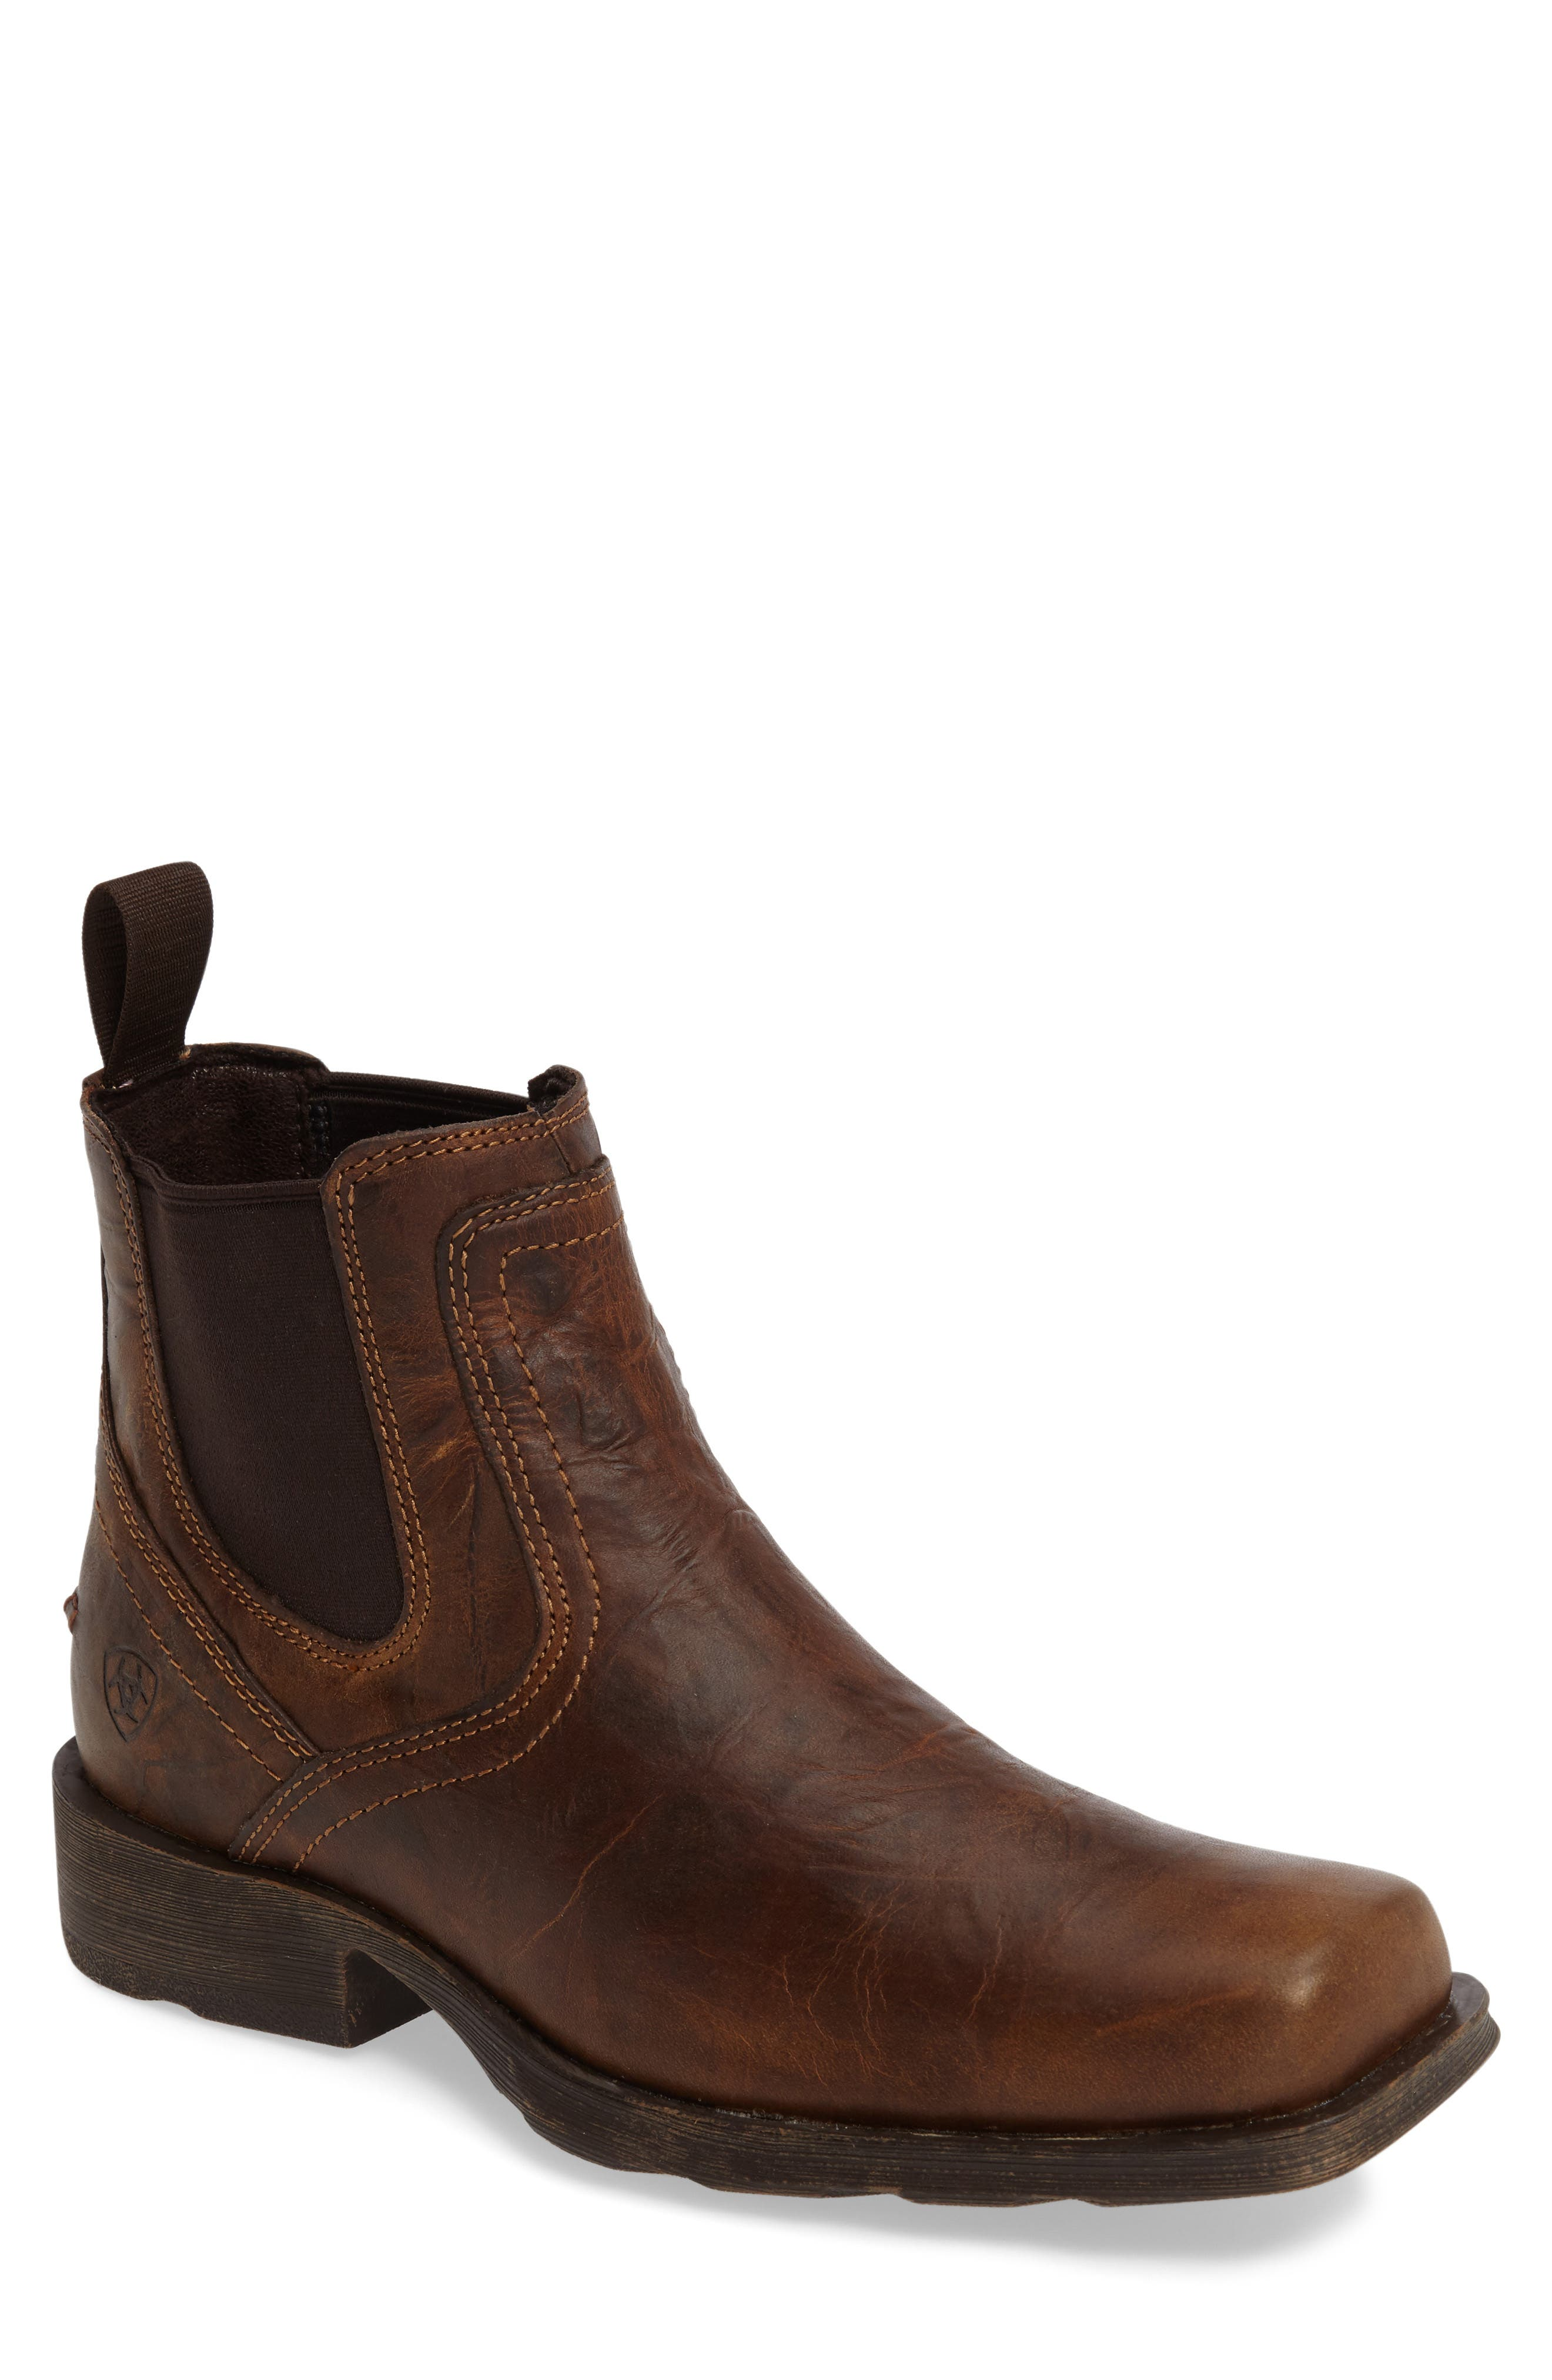 ARIAT,                             Midtown Rambler Mid Chelsea Boot,                             Main thumbnail 1, color,                             BARN BROWN